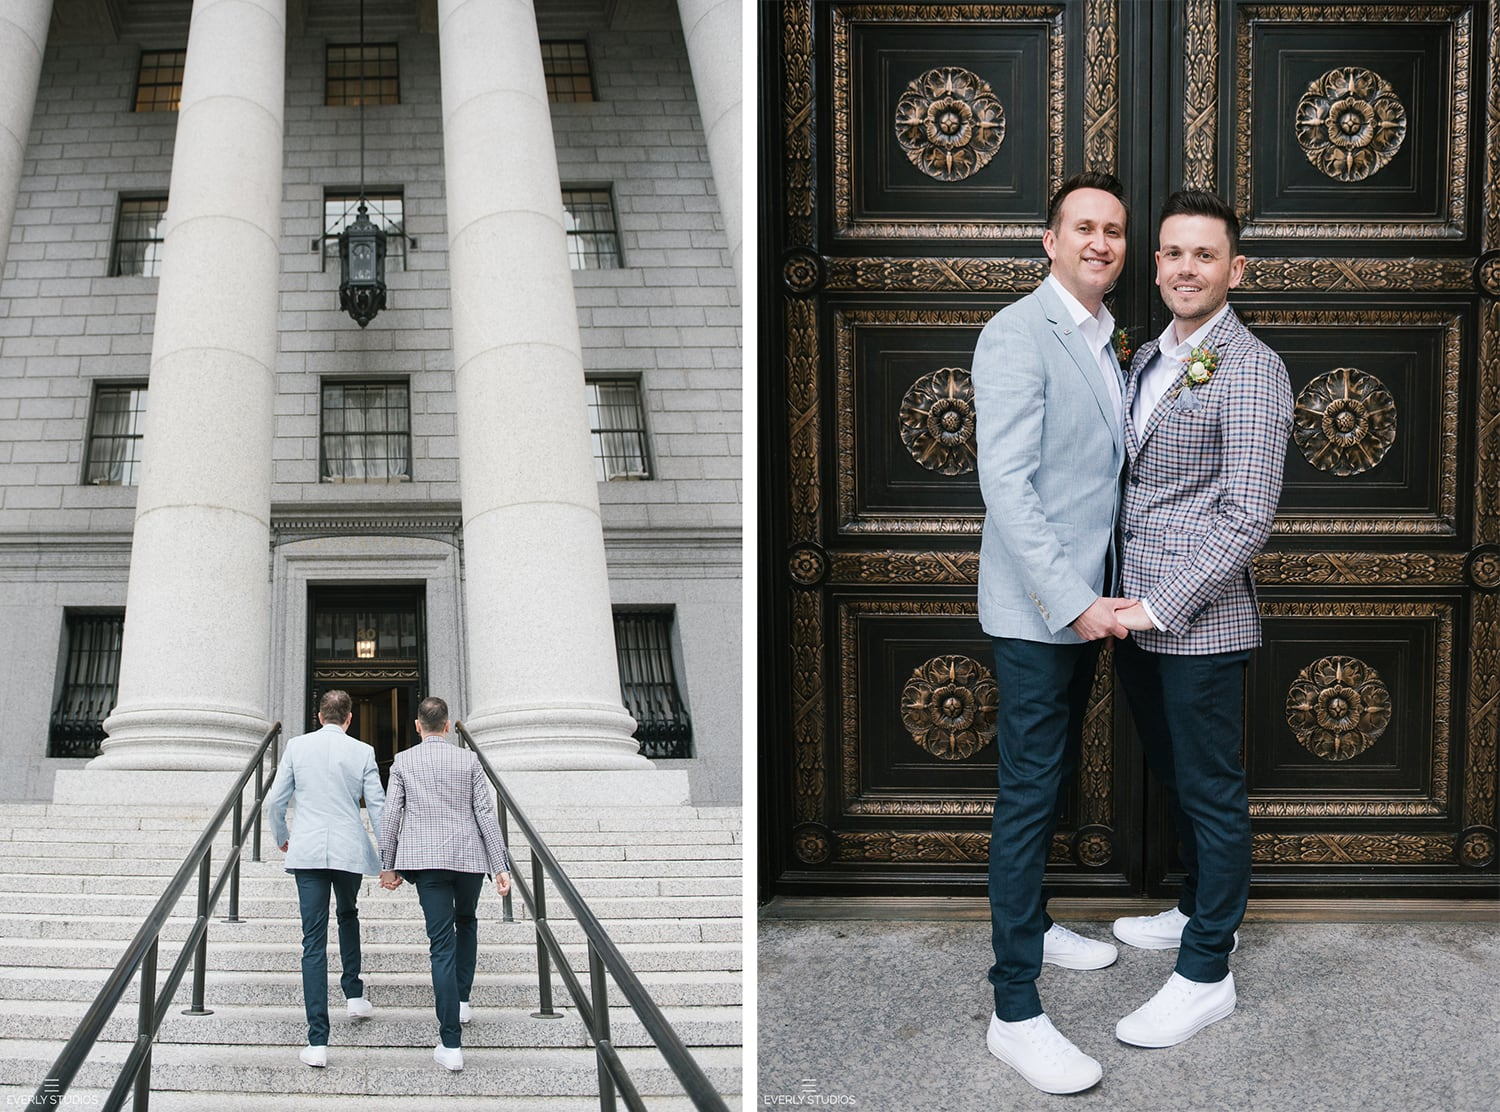 Newyork gay marriage